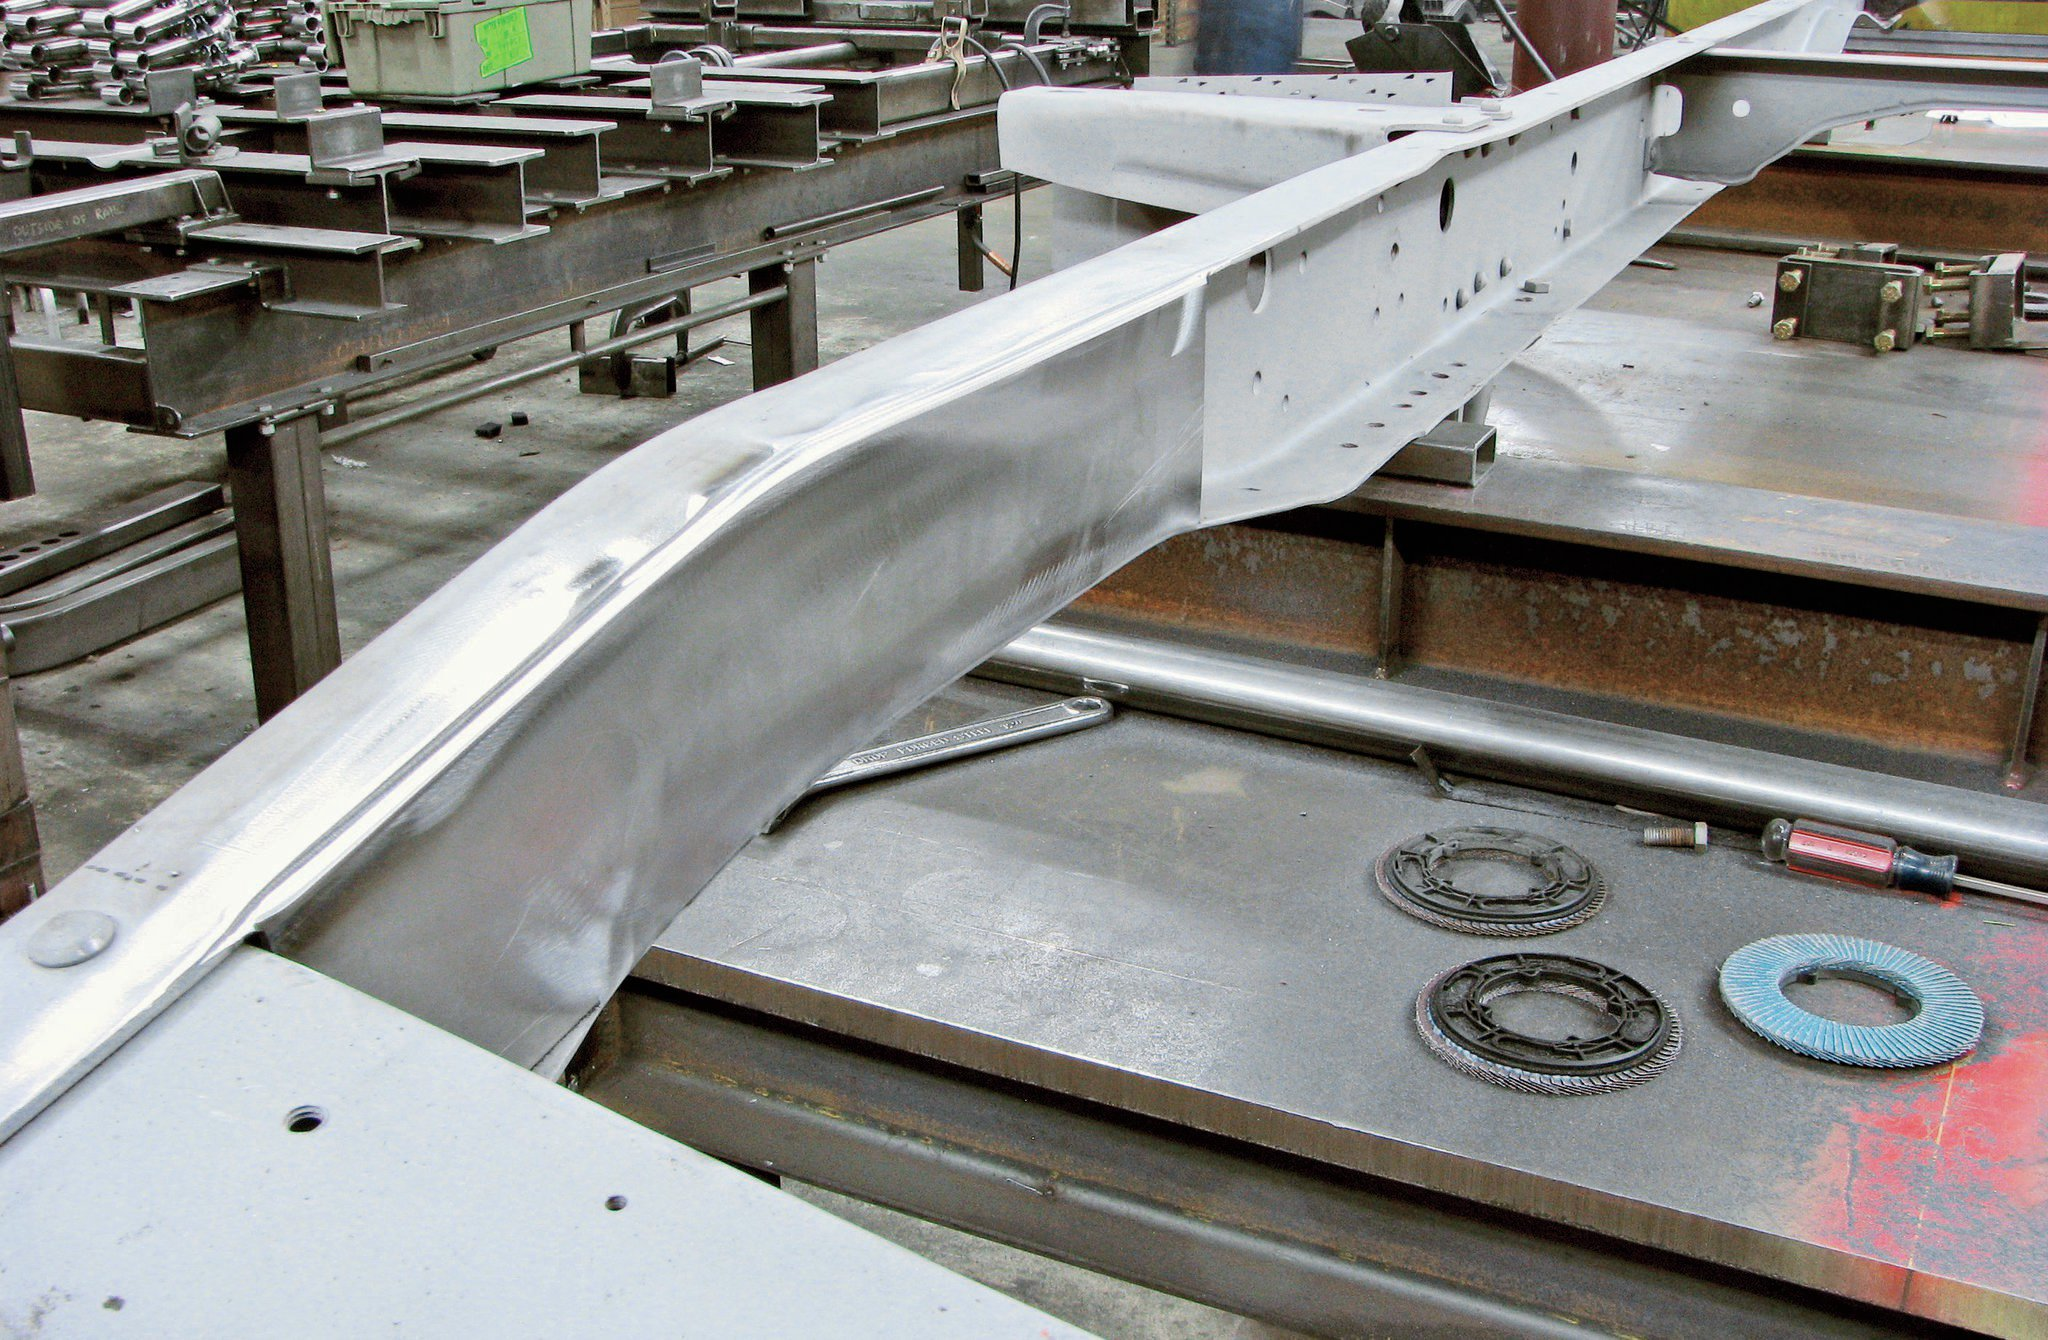 9. Once the welds are ground smooth, the boxed 'rails look like tubing.